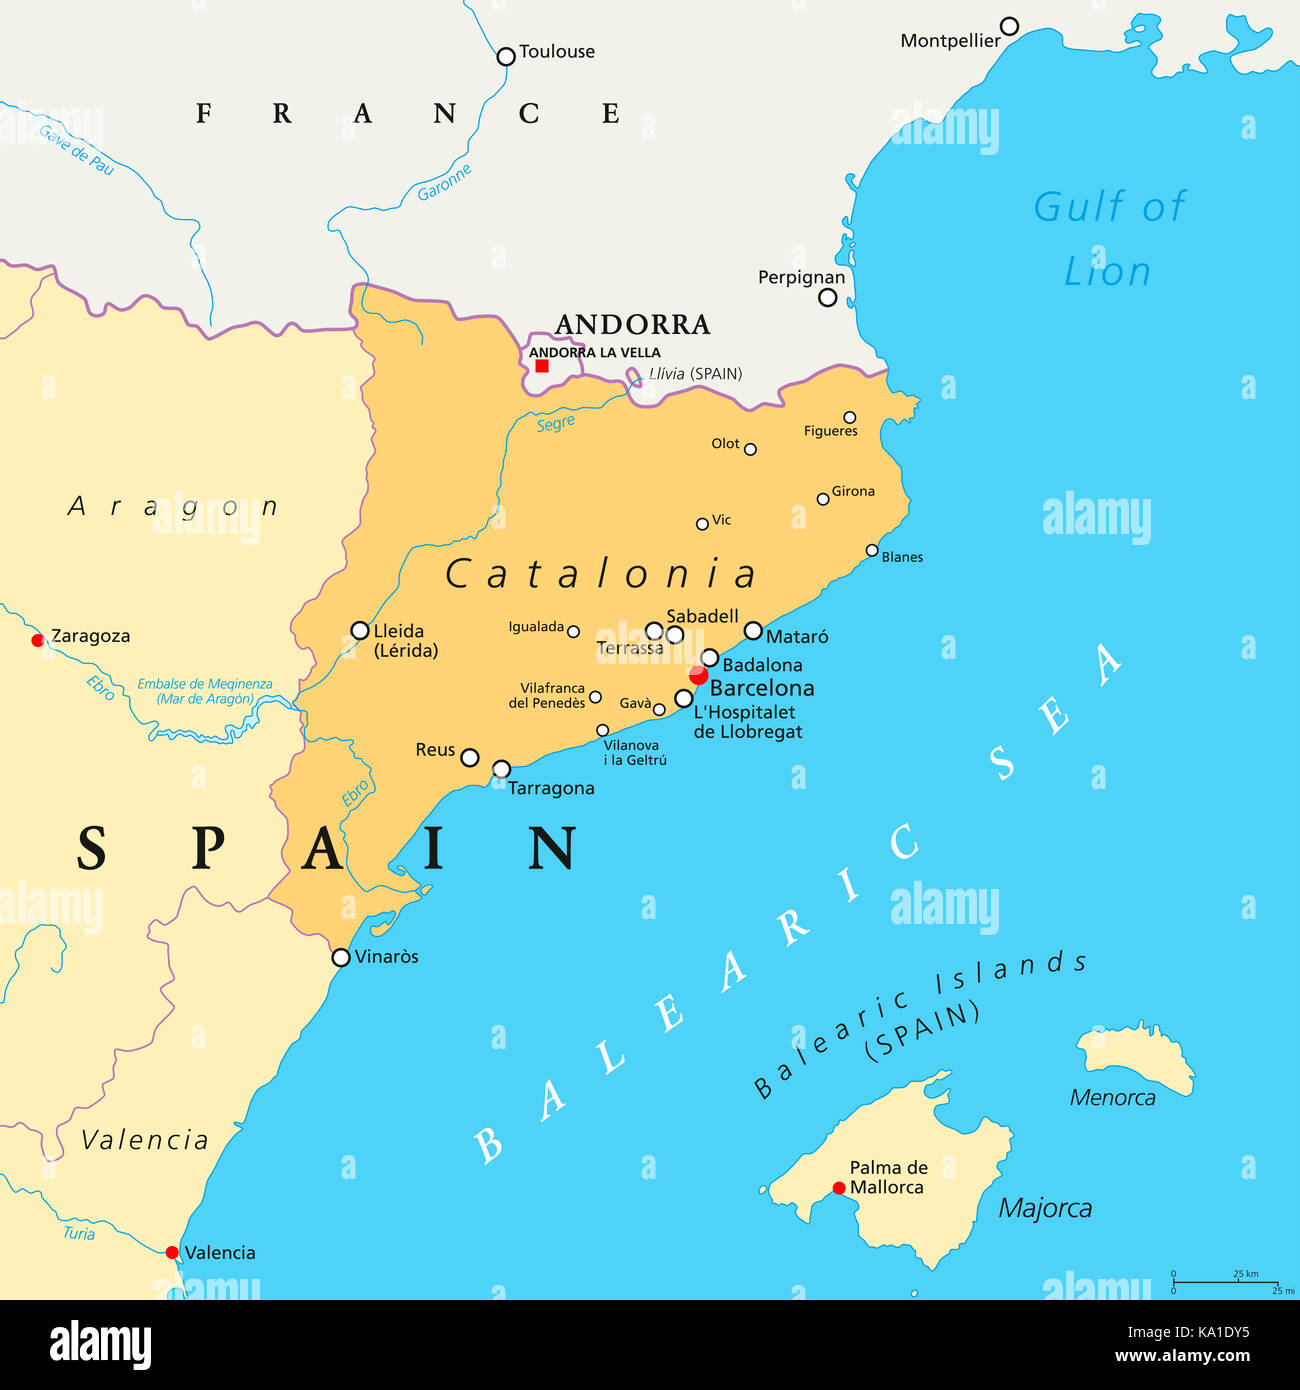 World Map Catalonia. Catalonia political map with capital Barcelona  borders and important cities Autonomous community of Spain Illustration